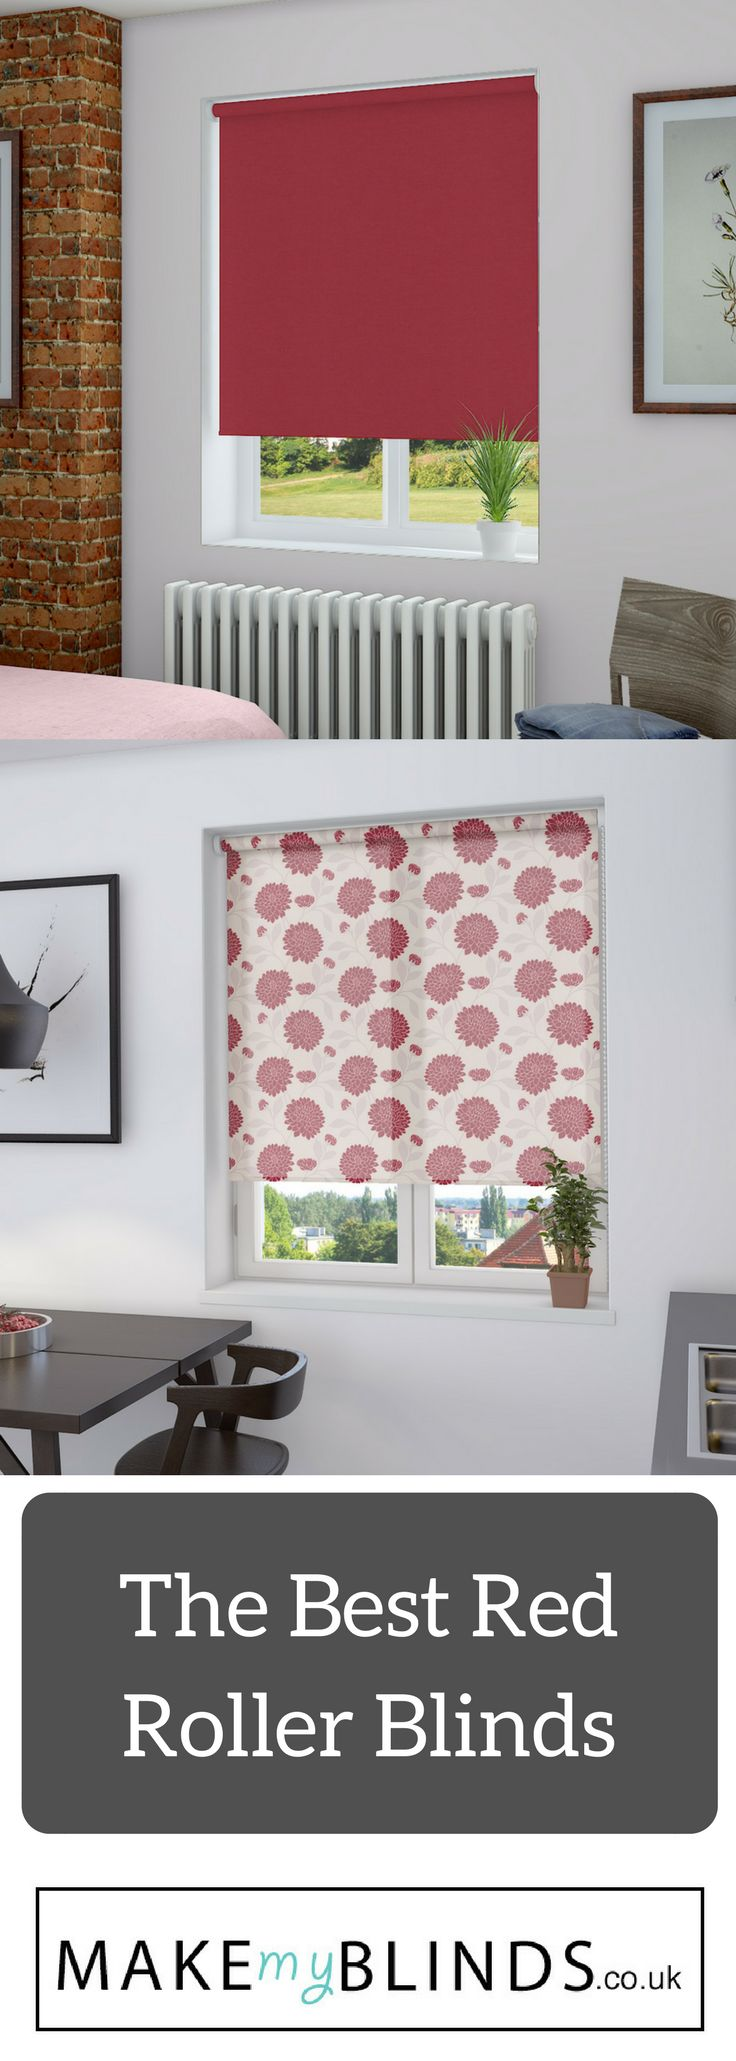 Our Fave red roller blinds in our collection - add some spice to your home with our made to measure blinds.